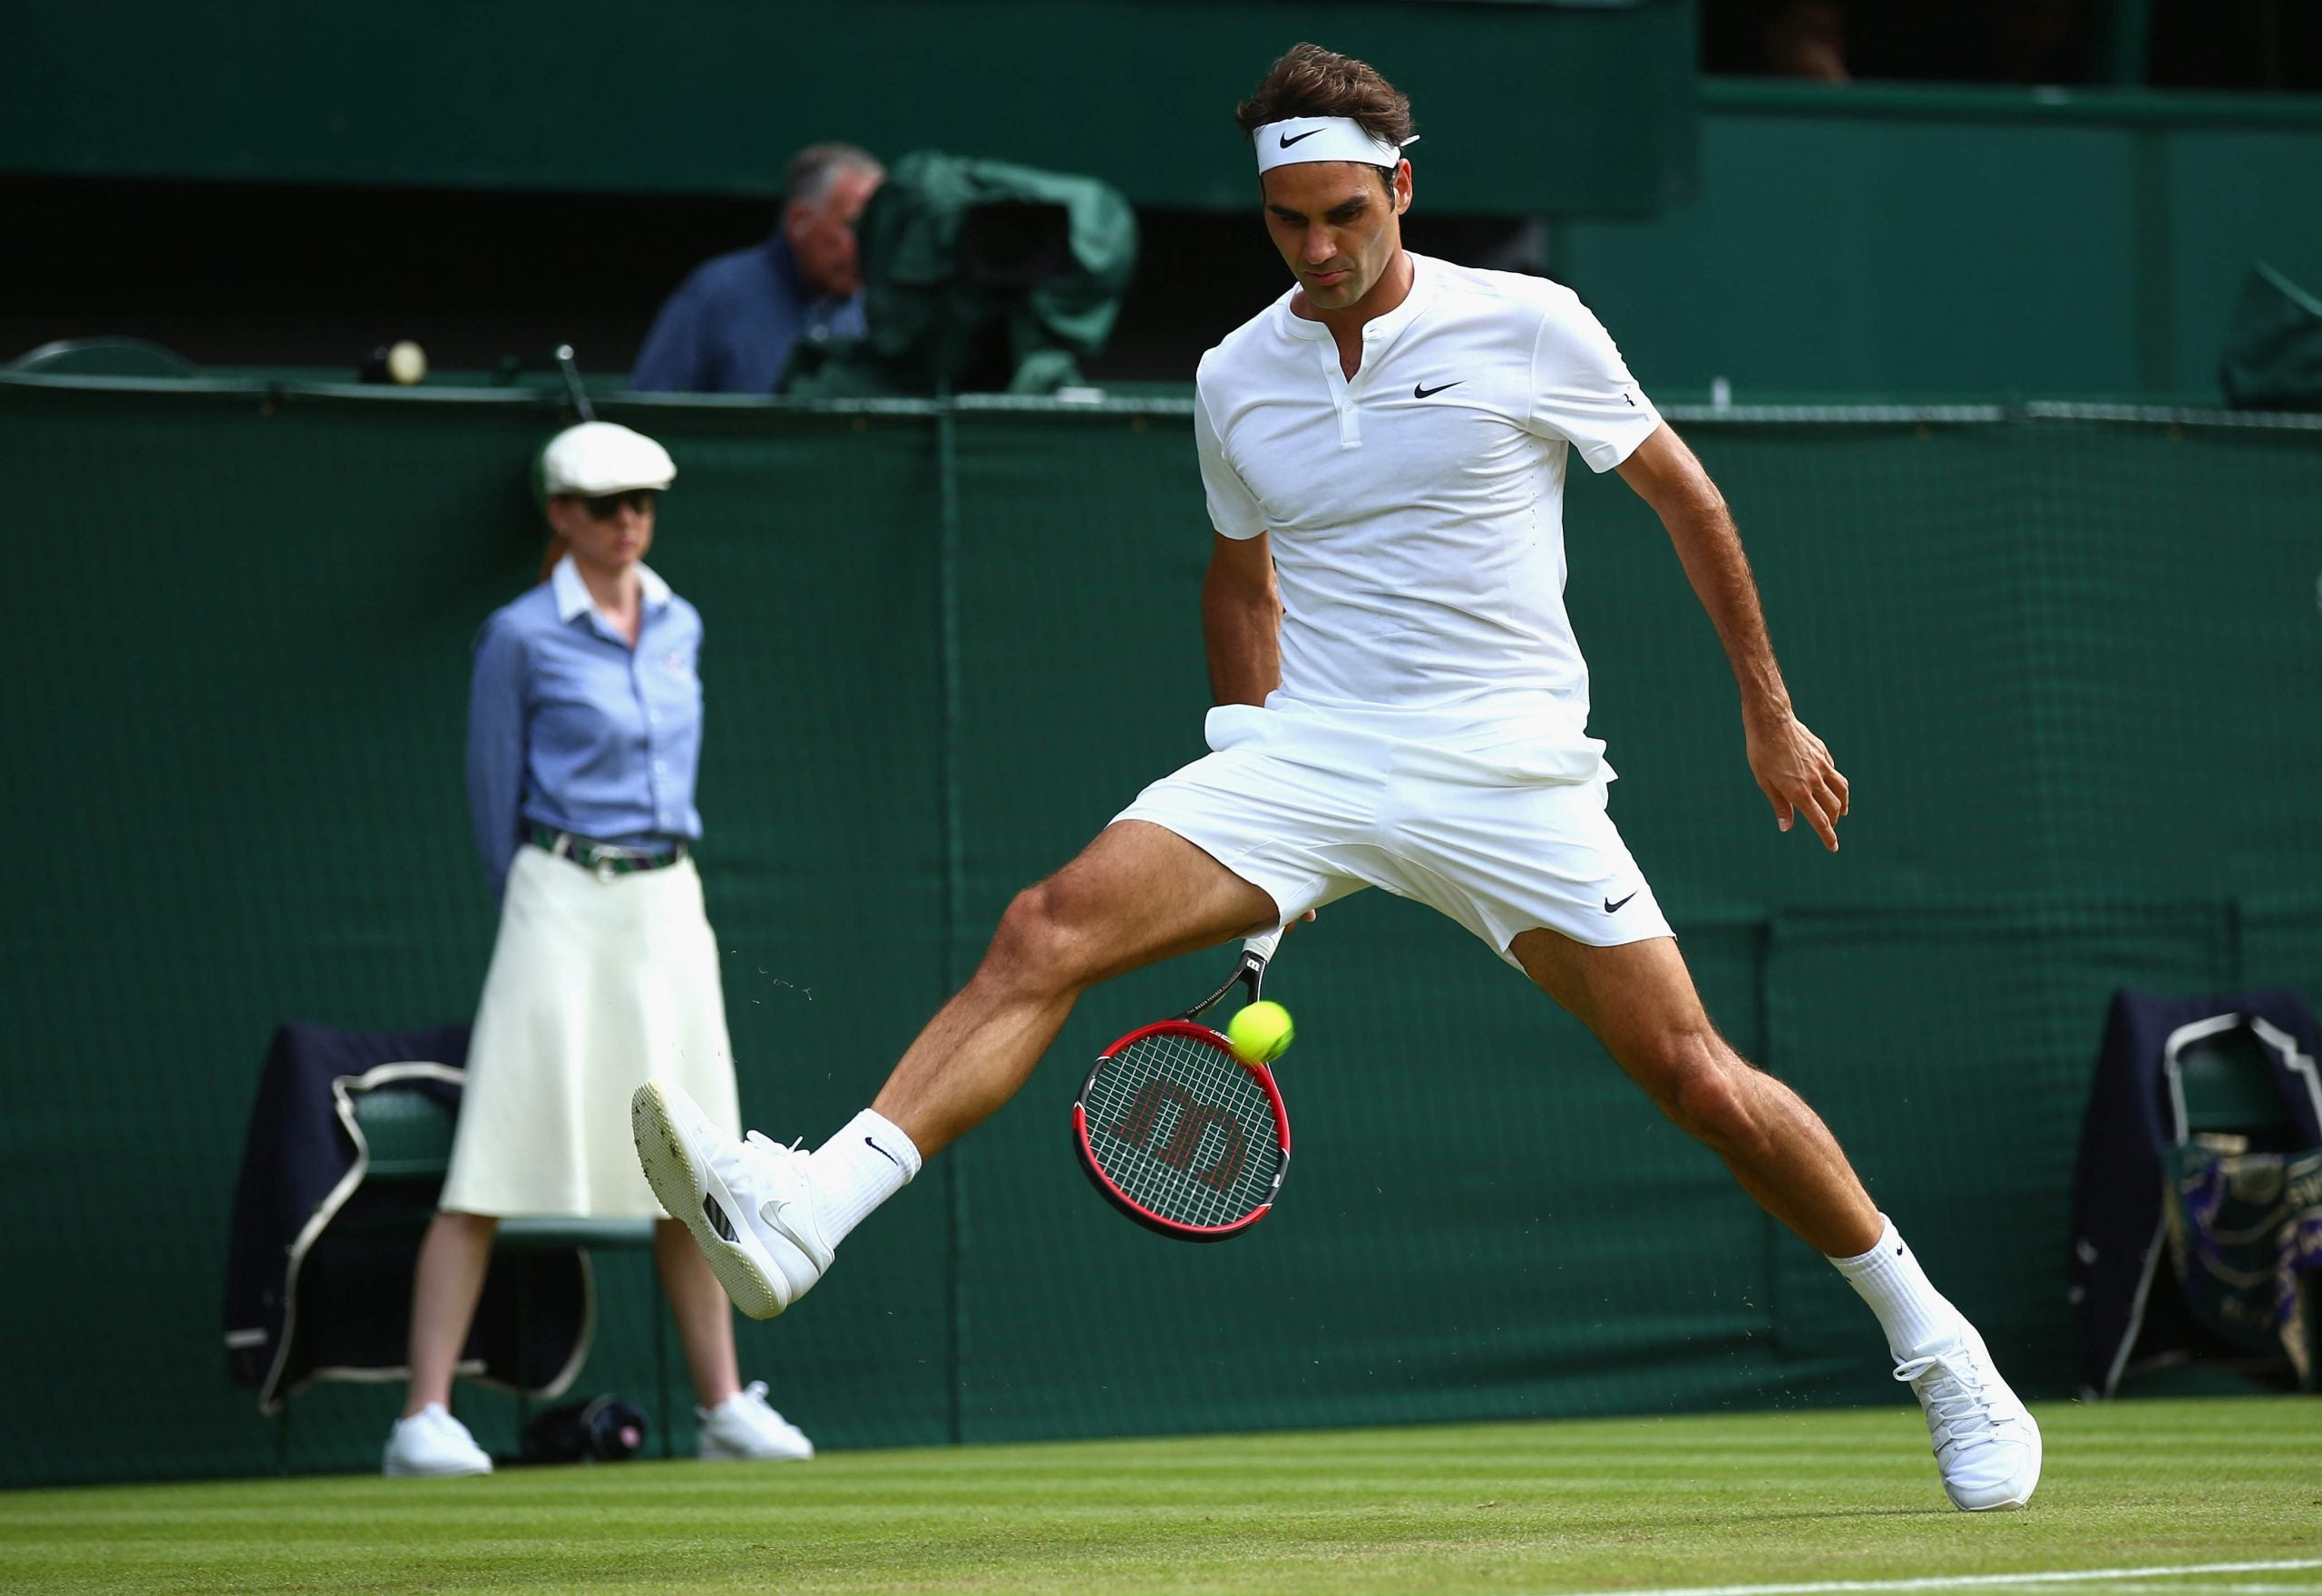 The era of the lone tennis gladiator is over – it's now a team sport